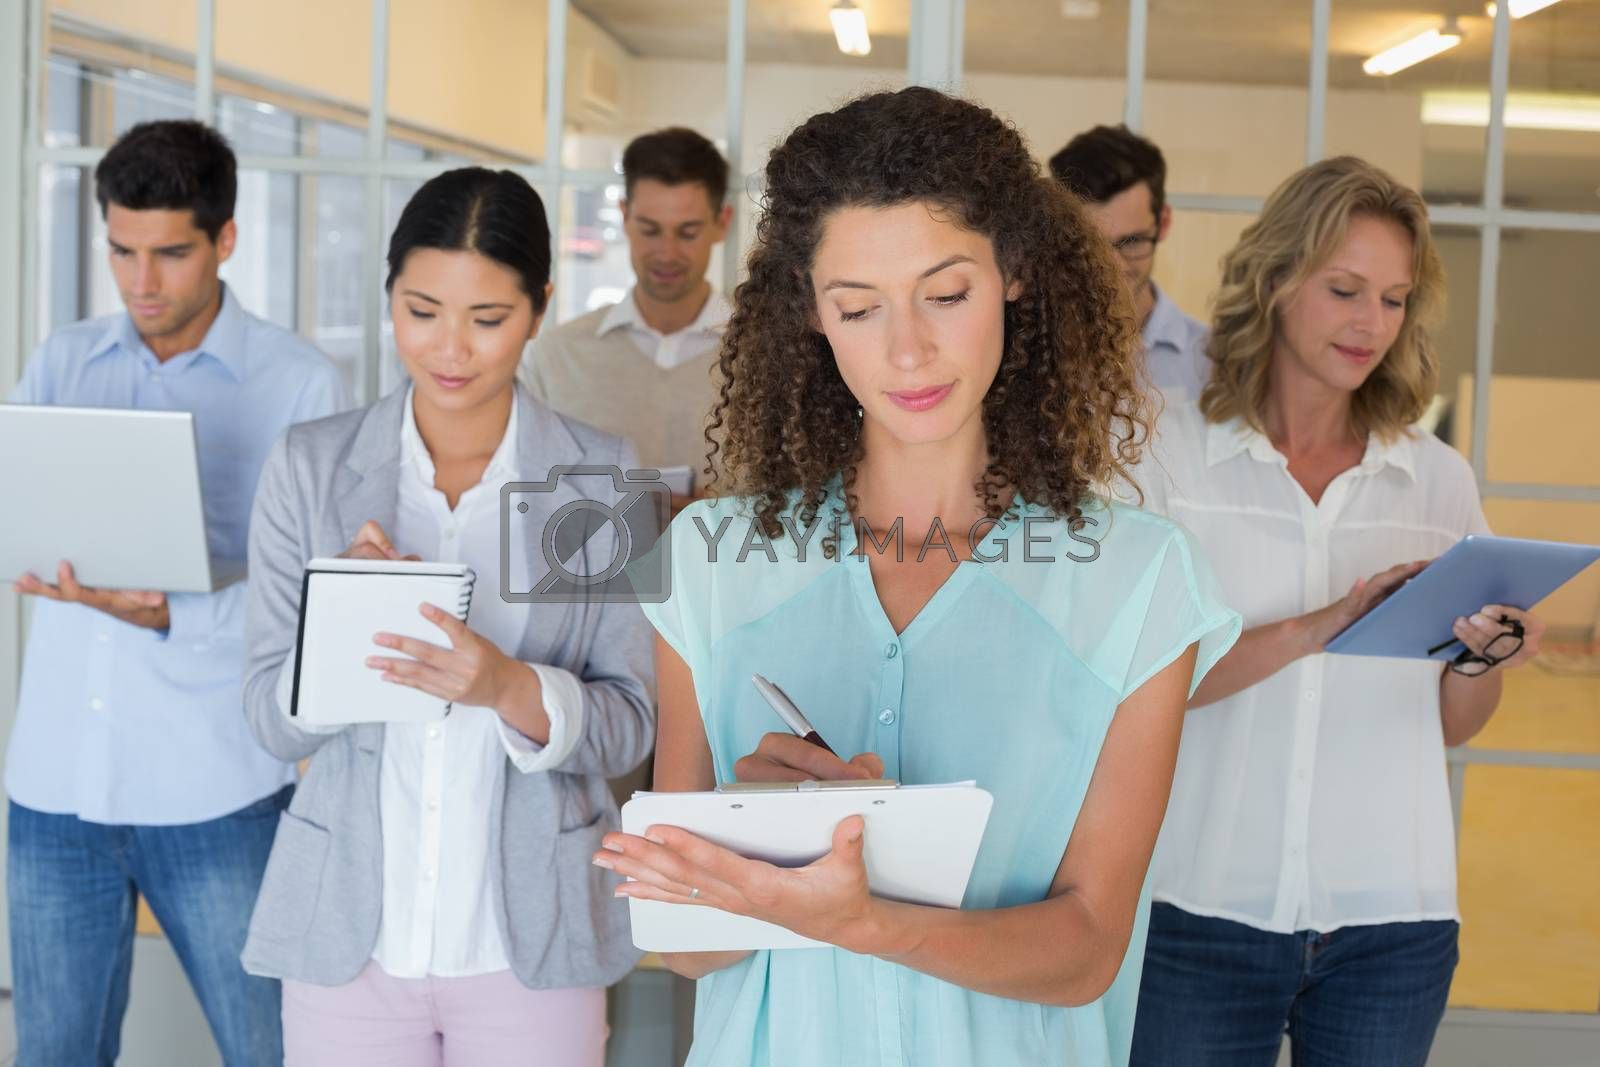 Royalty free image of Casual boss standing in front of her team all taking notes by Wavebreakmedia